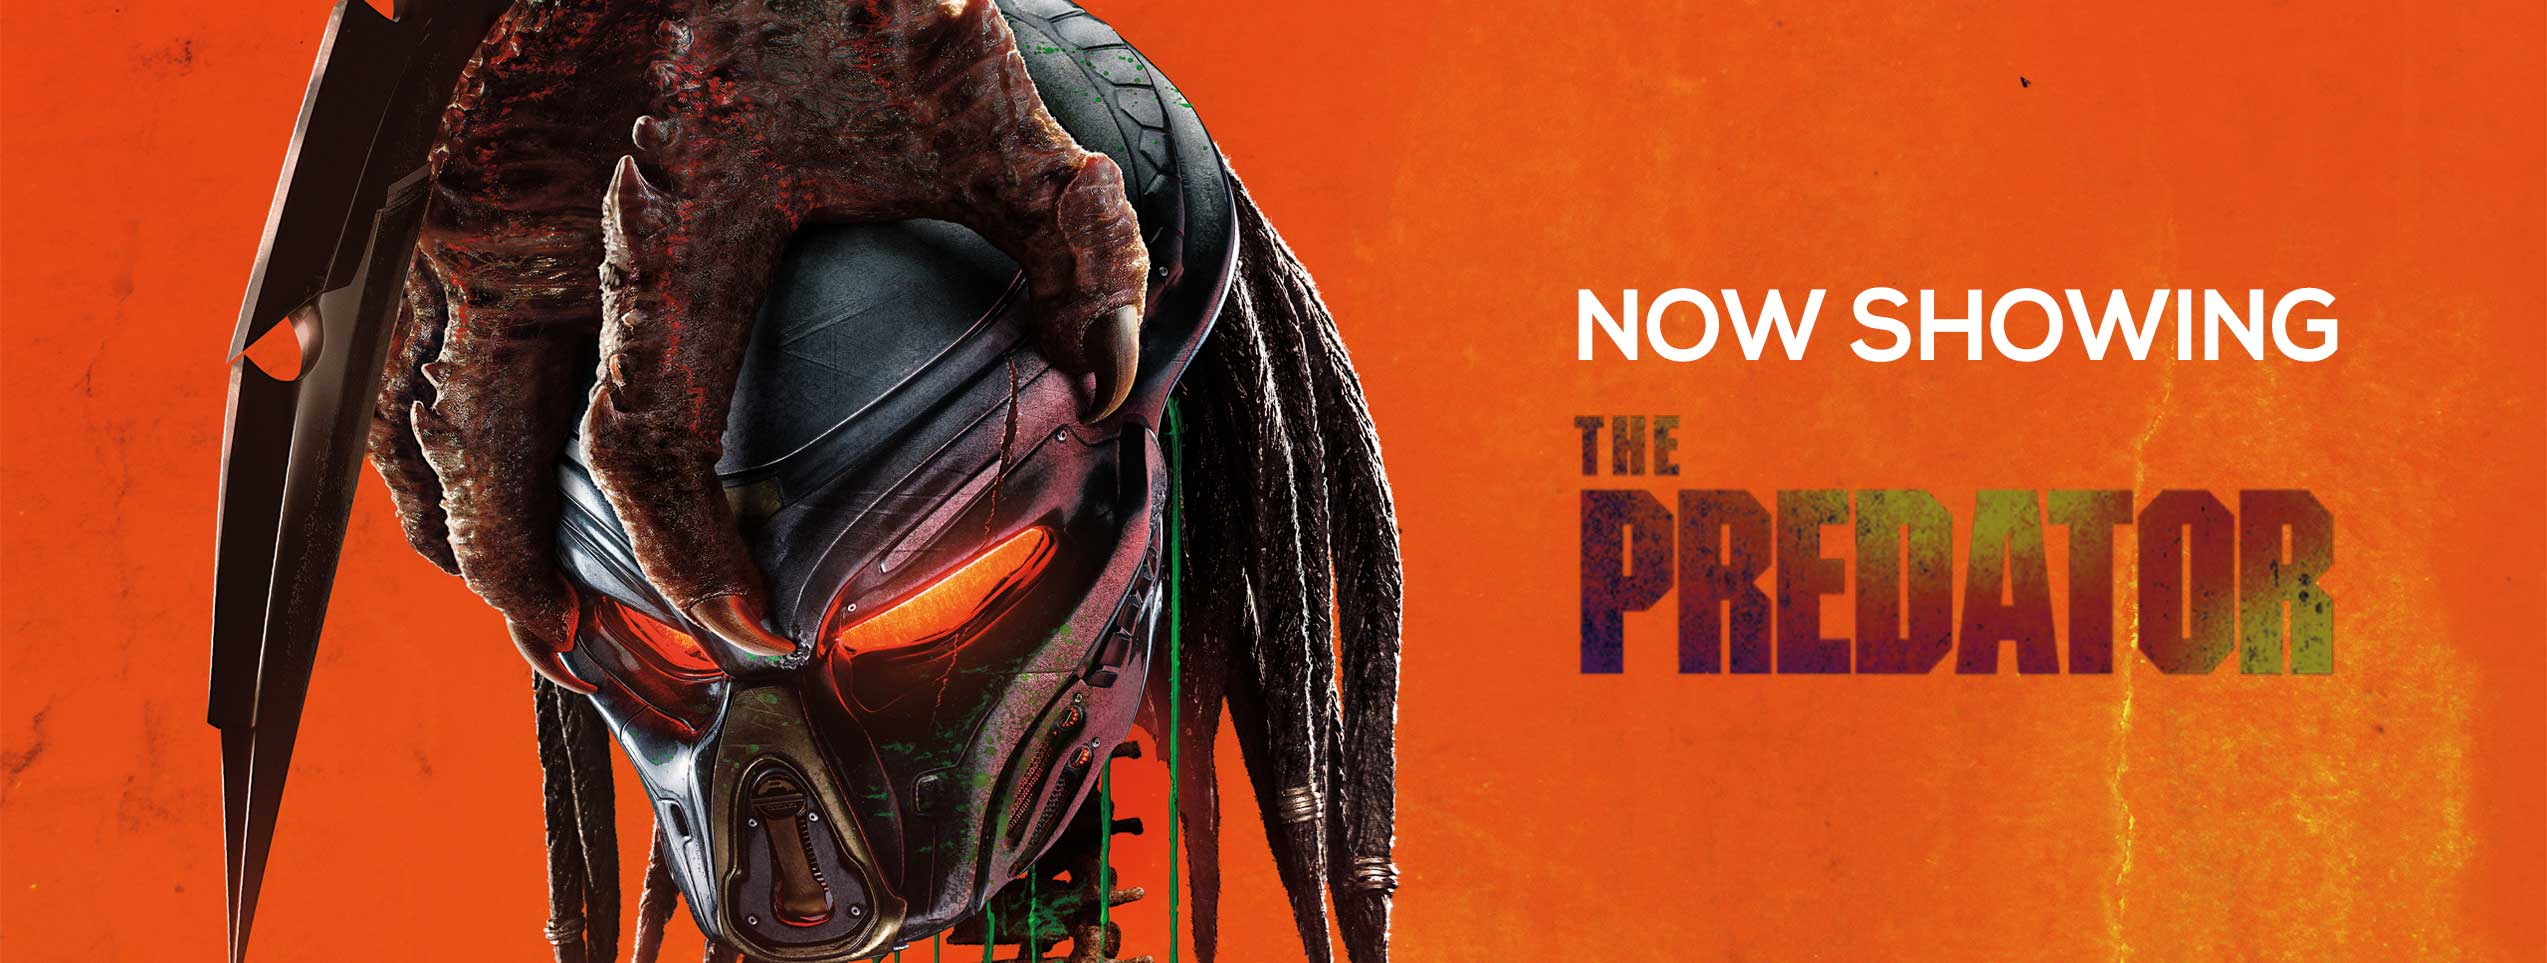 The Predator (2D) (PG15) (Eng)